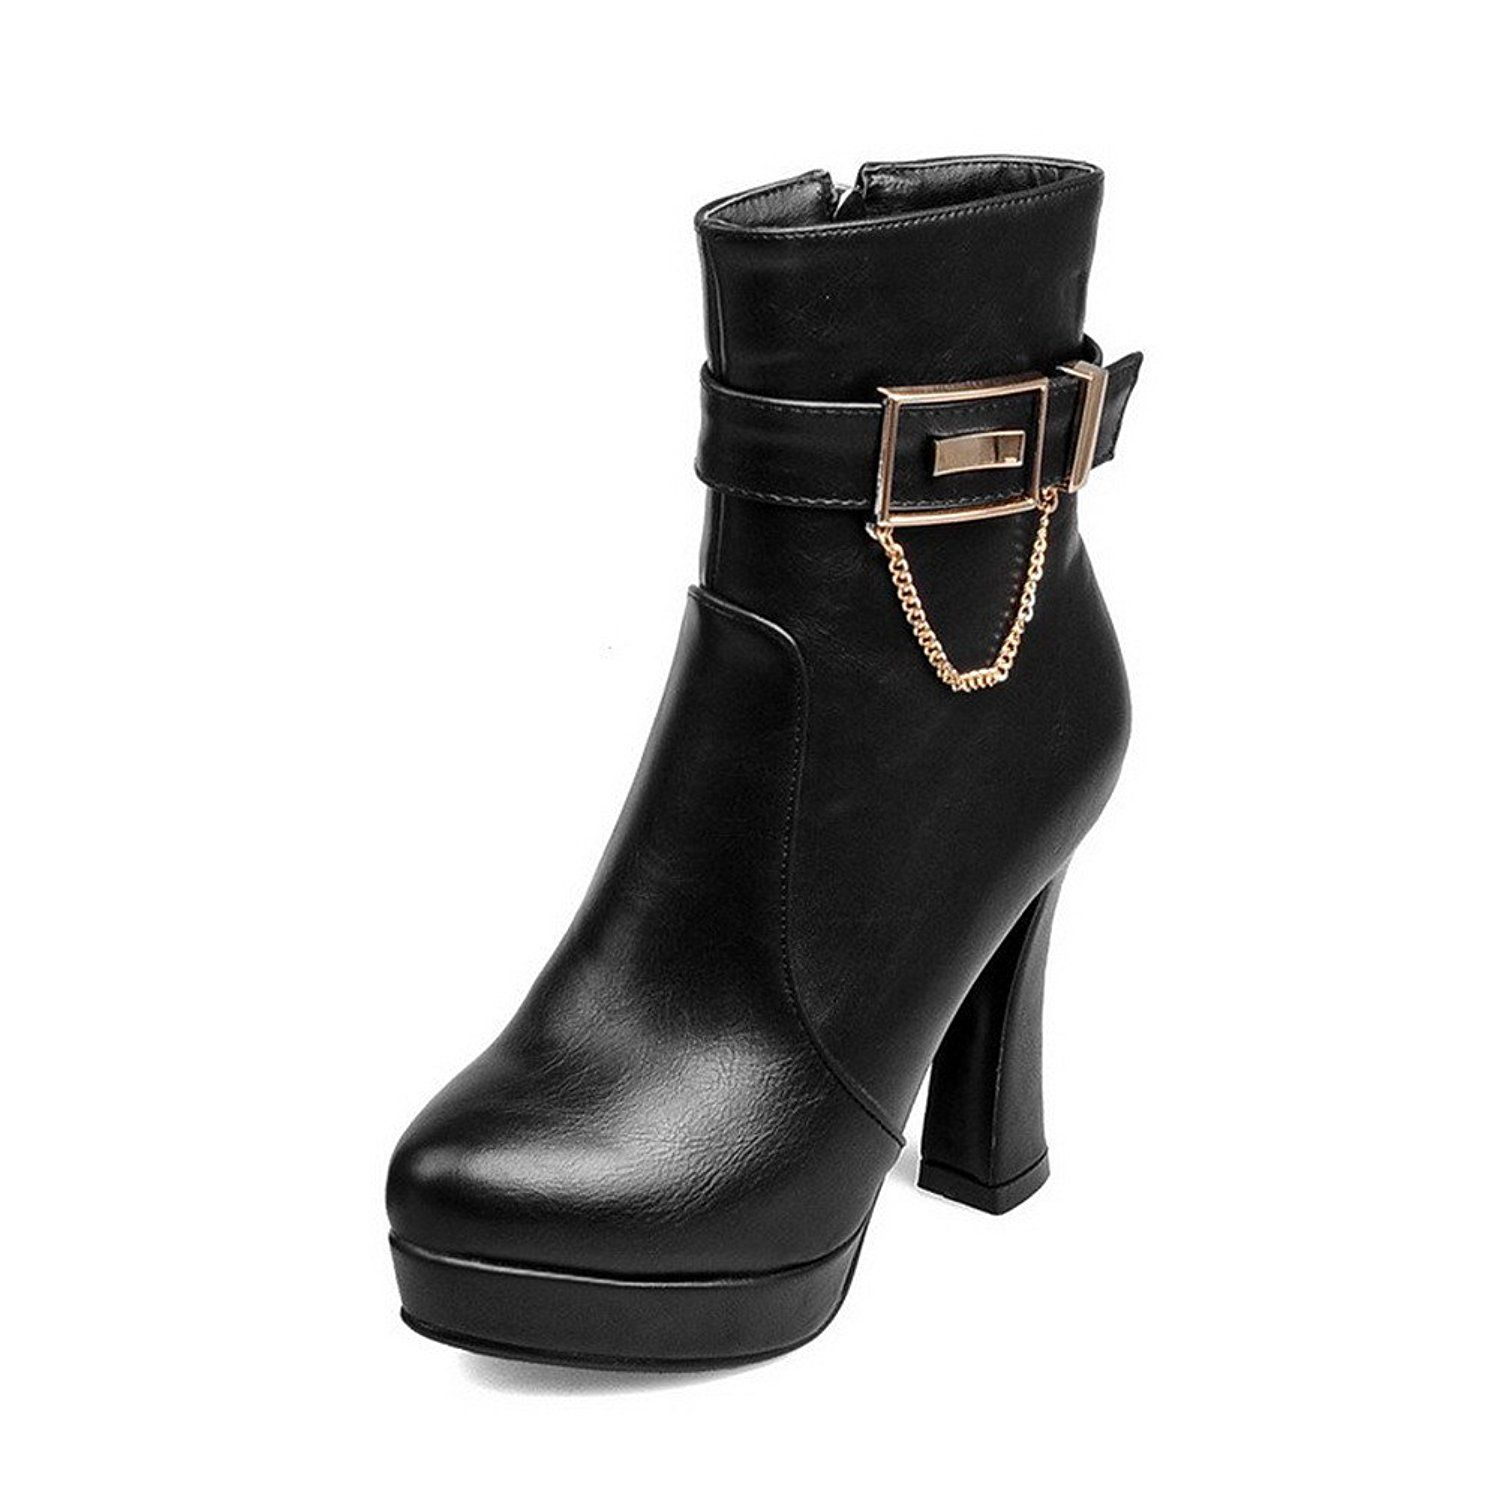 Women's Round Closed Toe Solid Low Top High Heels Boots with Metal